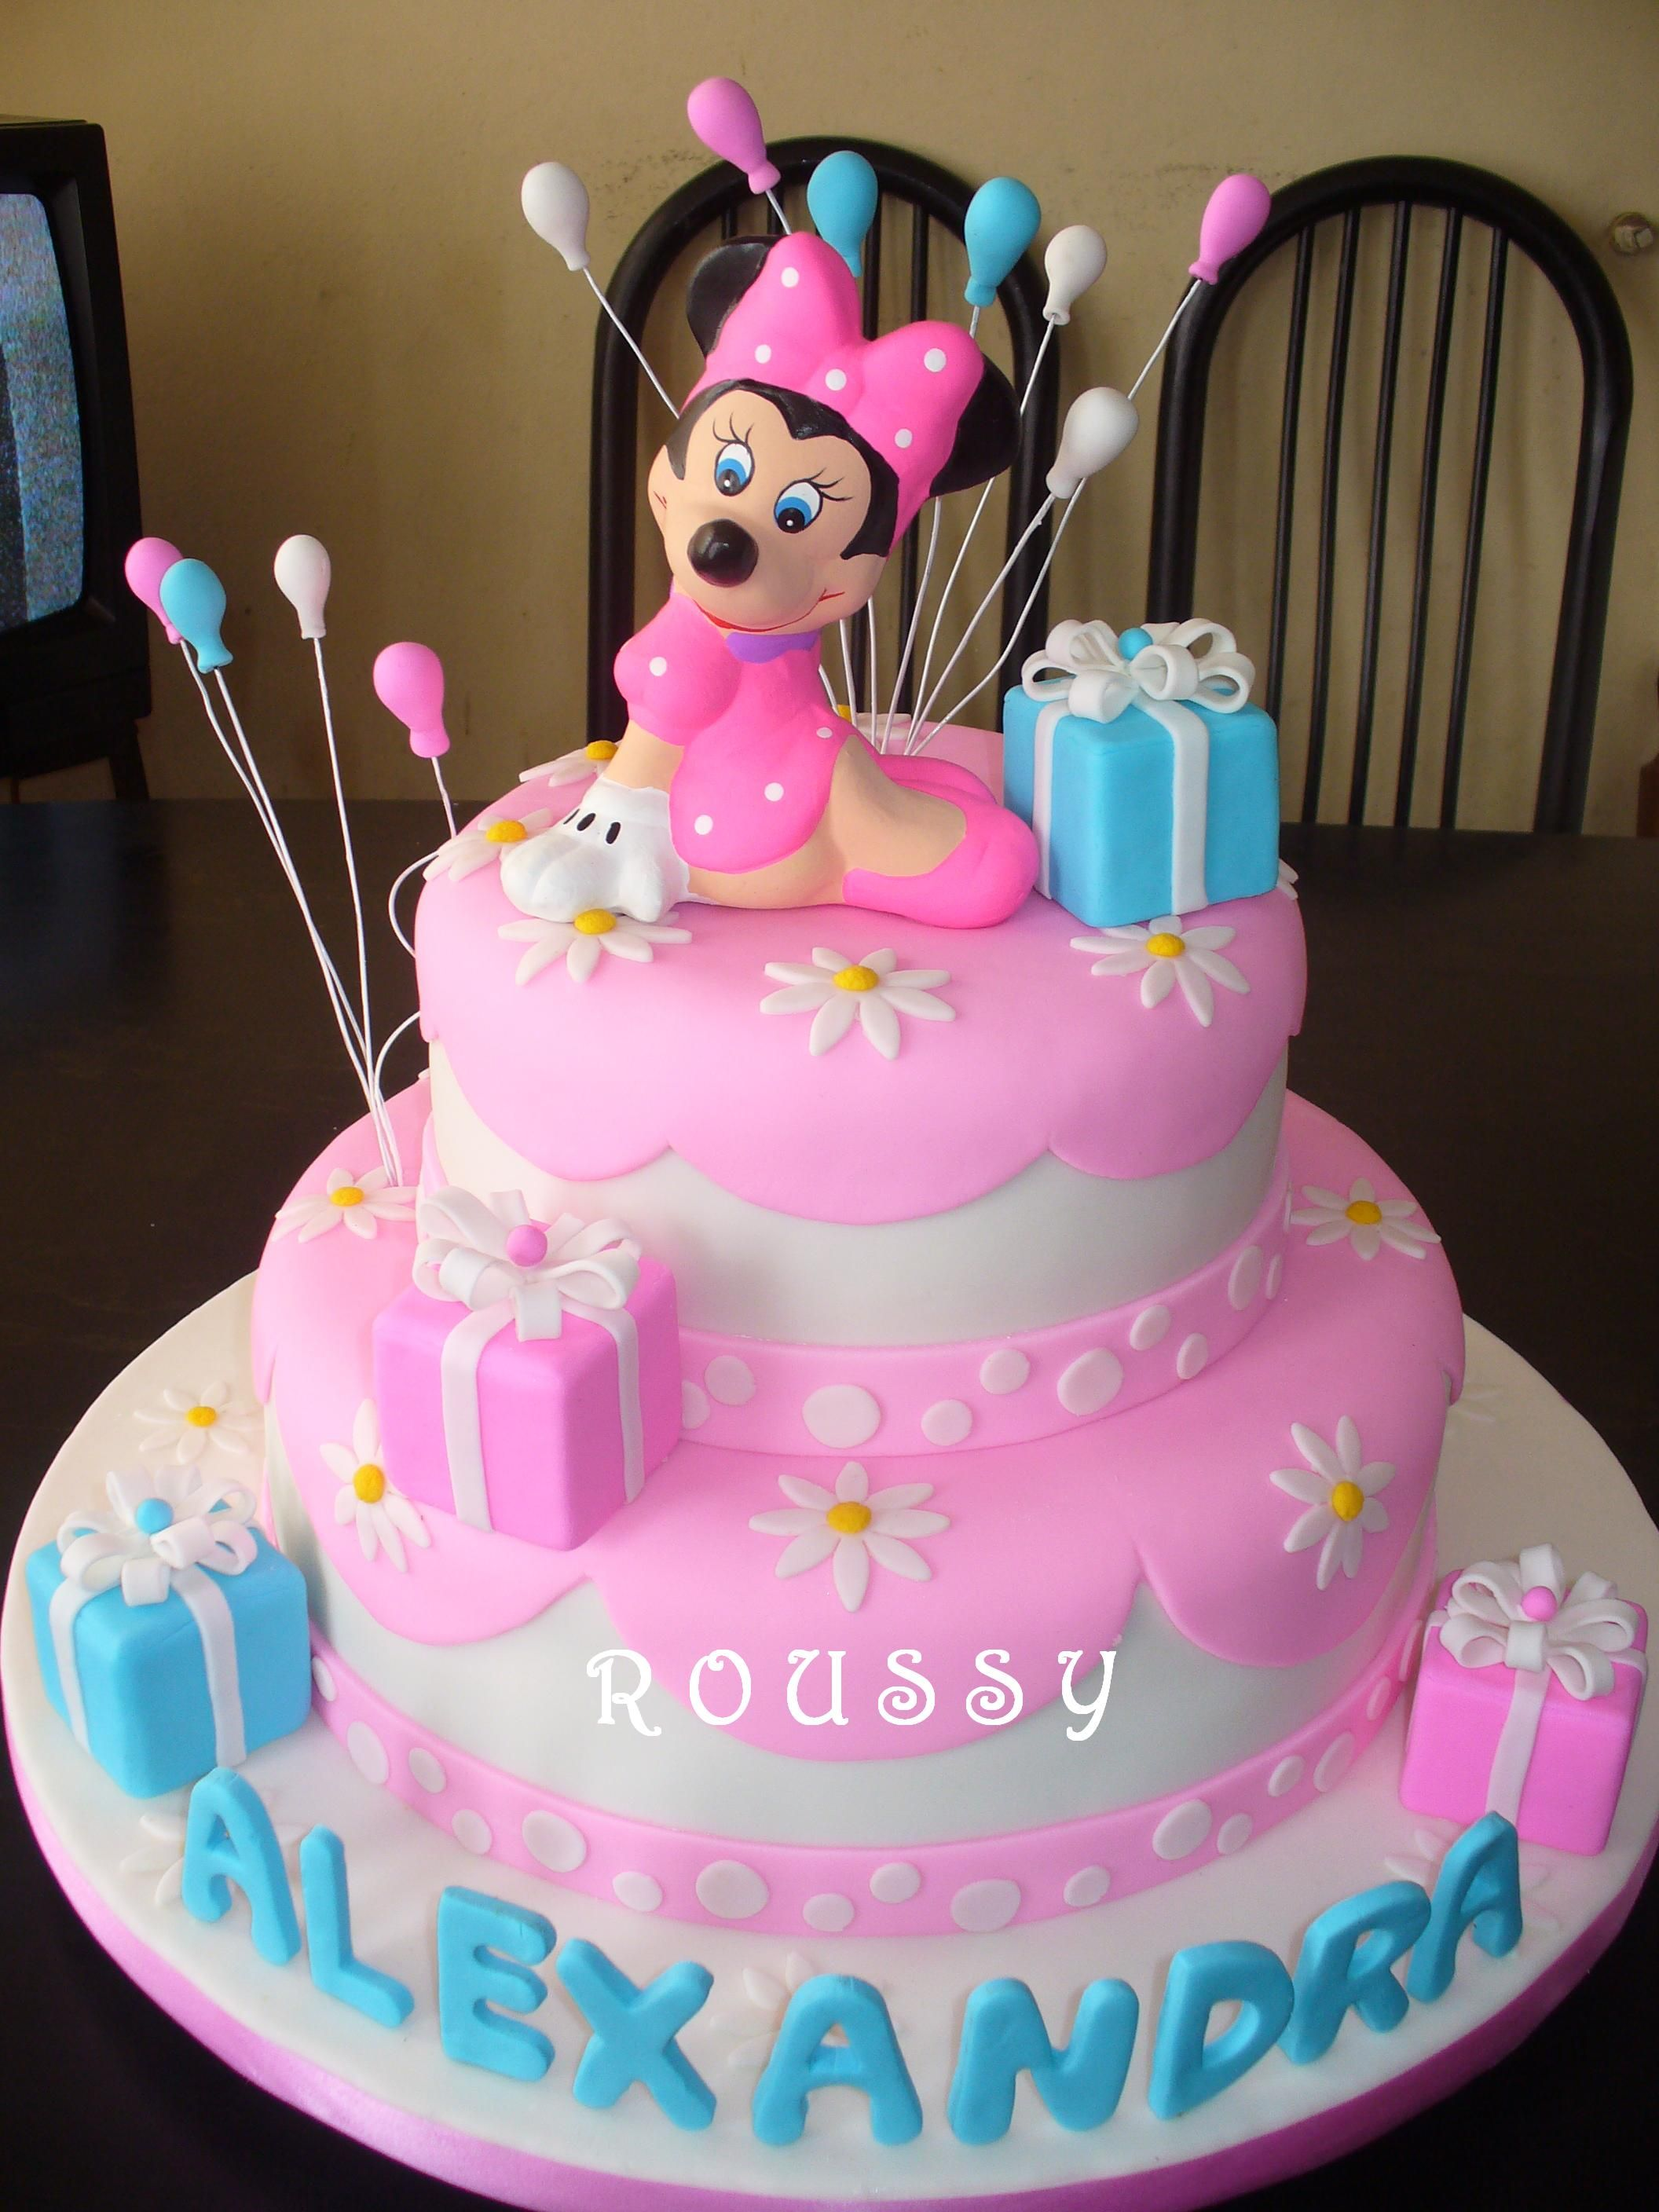 Cupcakes Minnie Mouse  Torta Minnie Mouse